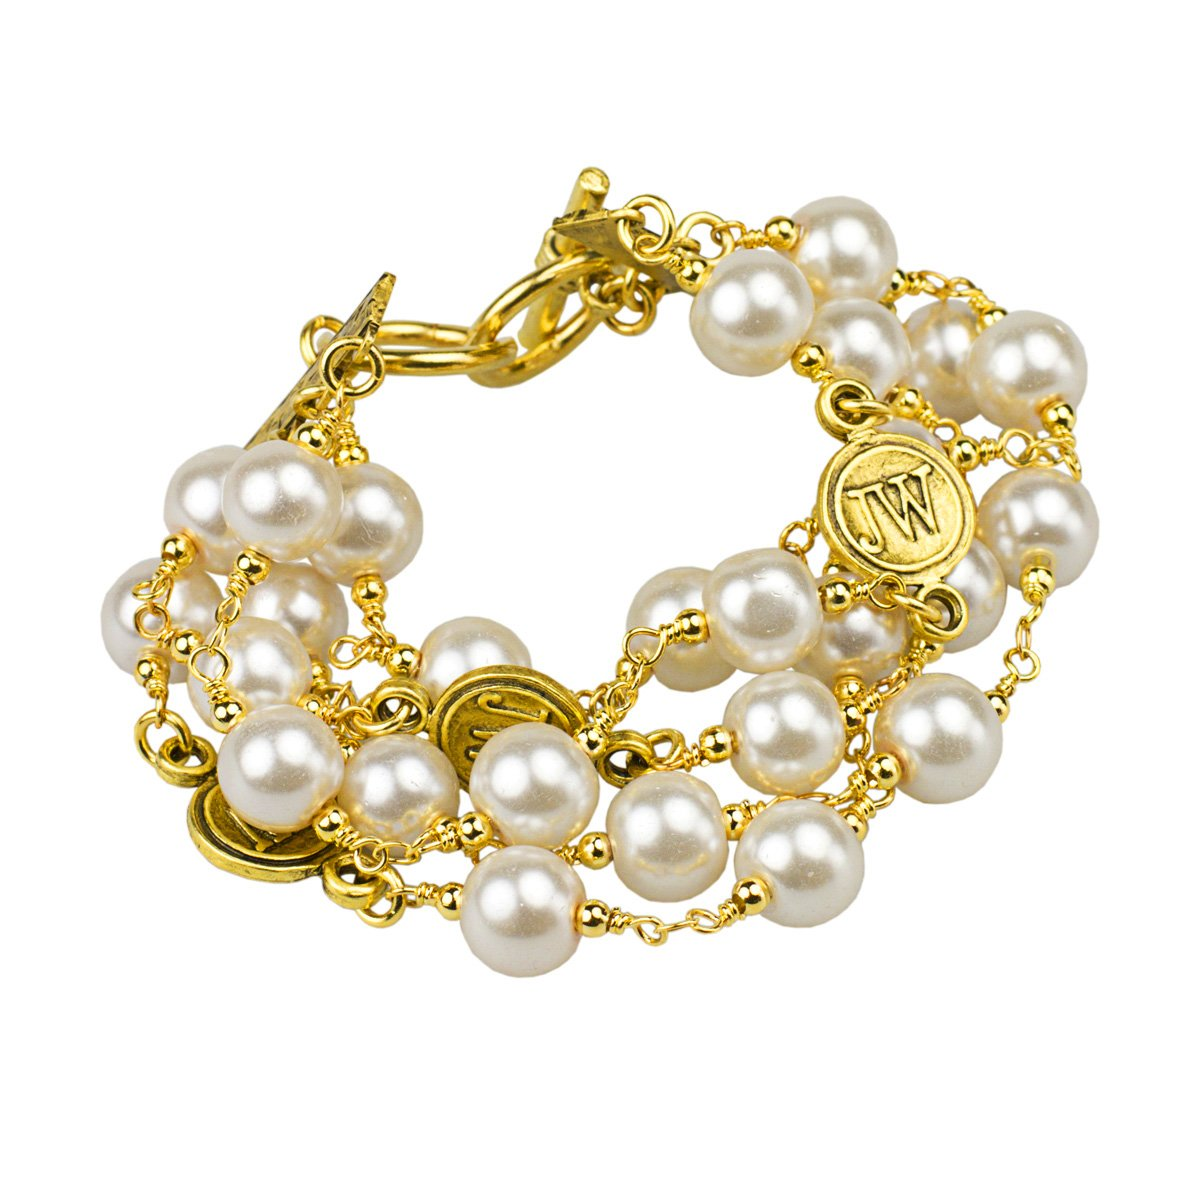 John Wind, Multi-Strand Anniversary Pearl Bracelet (Gold Finished Base Metal) by John Wind